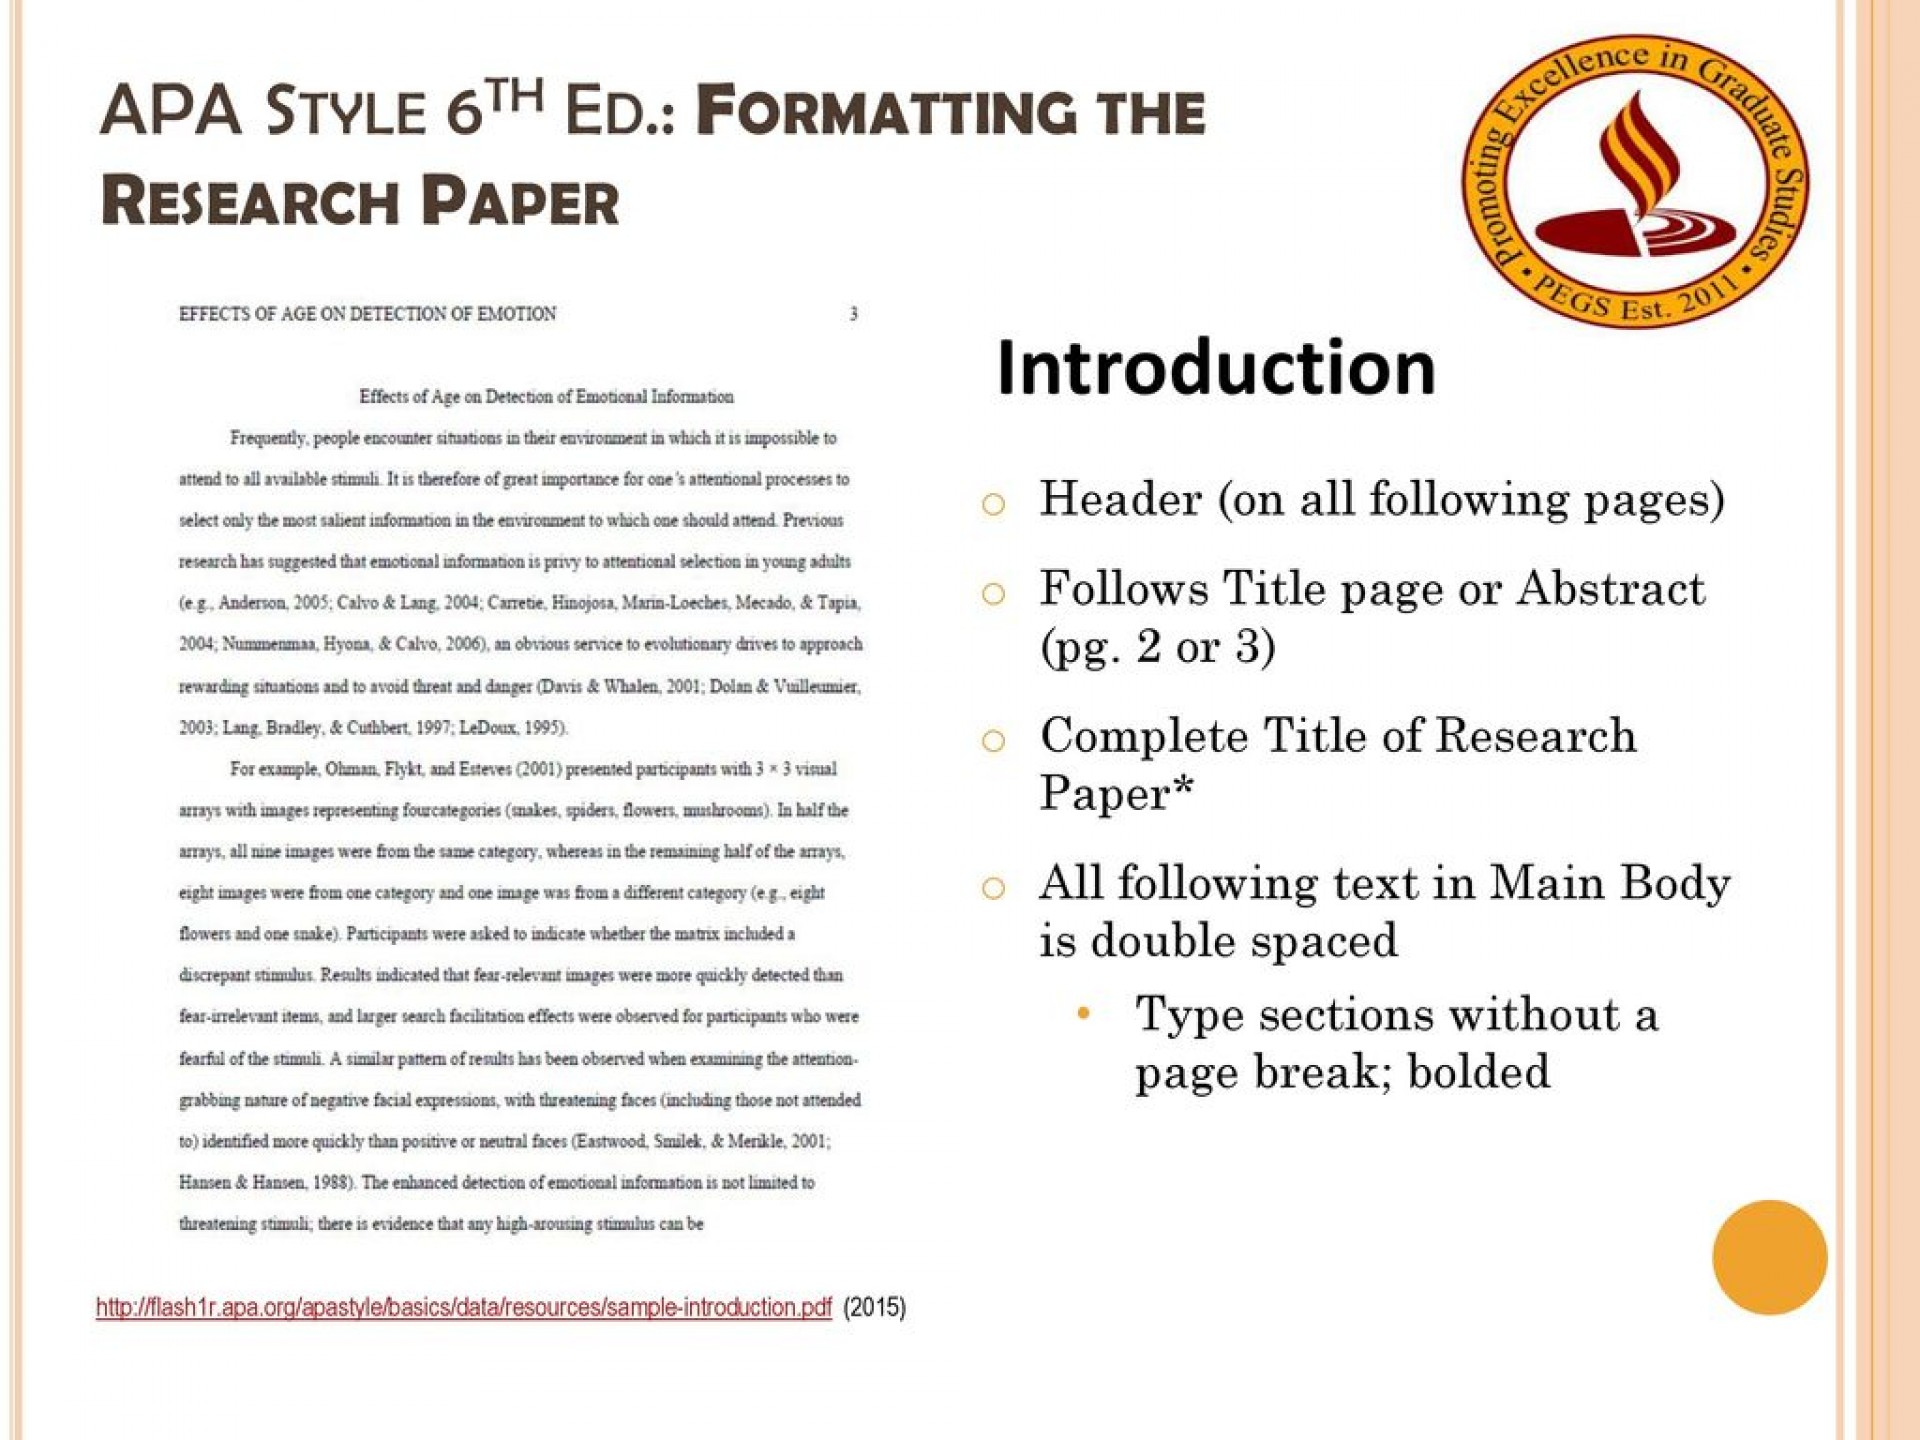 012 Apa Format For Research Paper 6th Edition Apastyle6thed Unique Style Example 1920